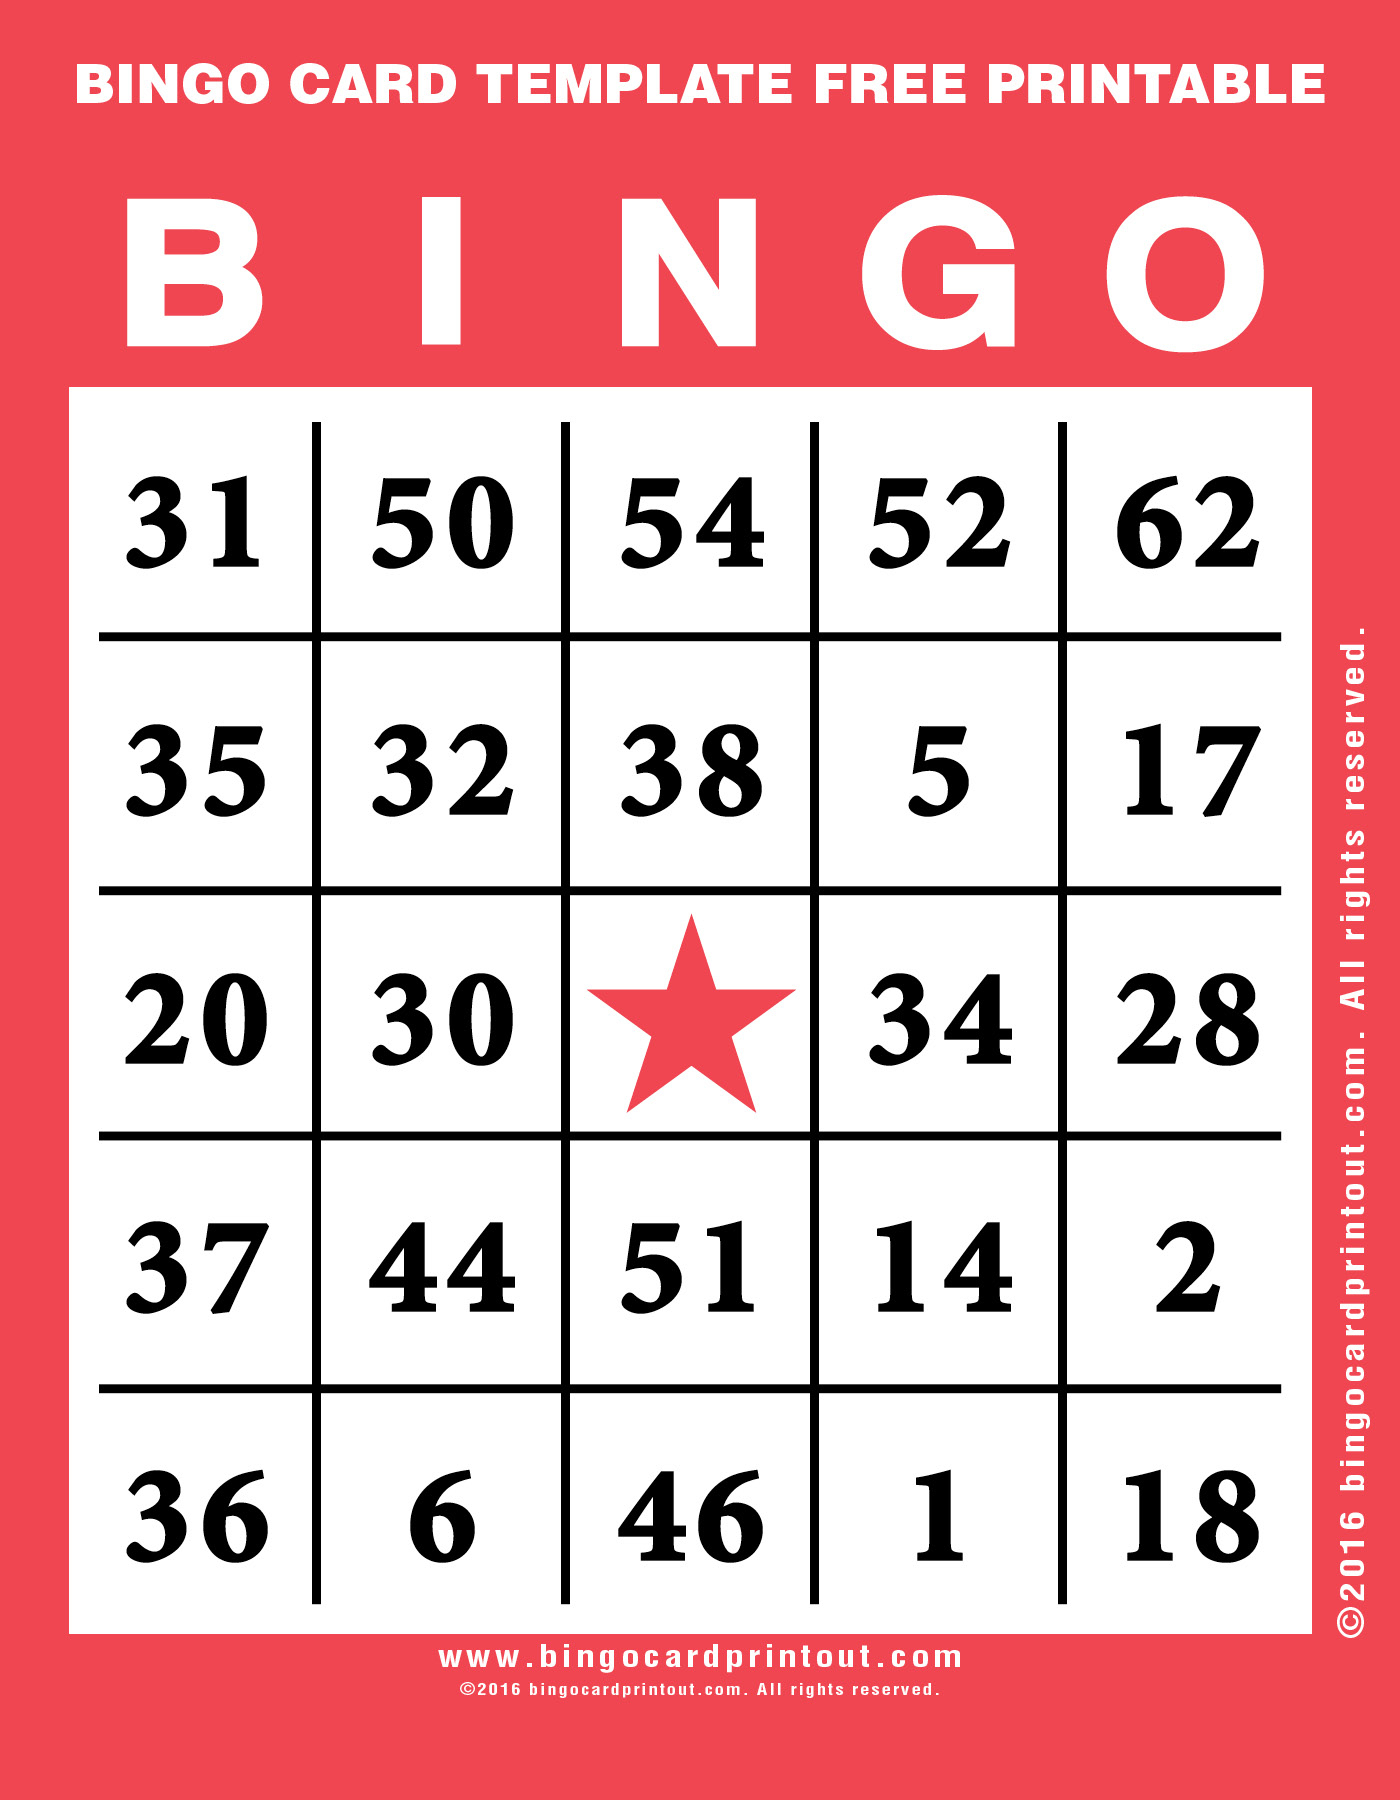 Bingo Card Template Free Printable - Bingocardprintout - Free Printable Bingo Cards